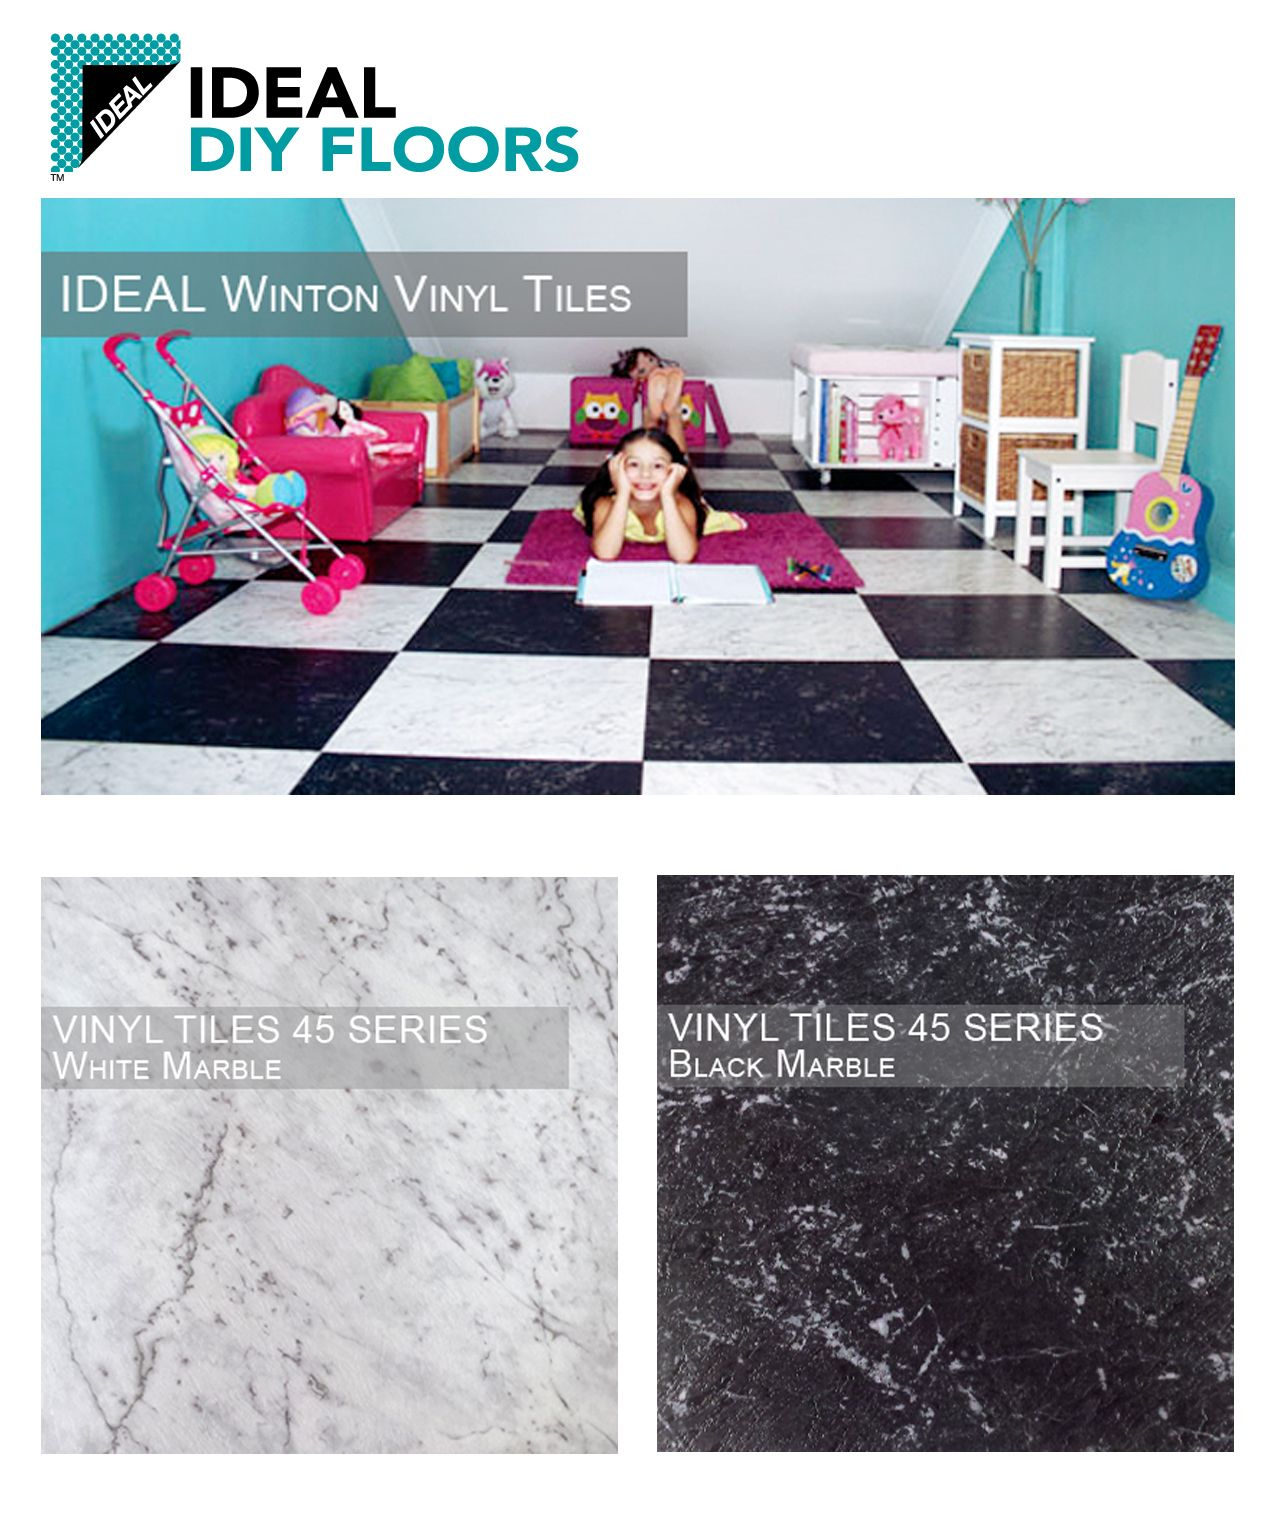 Easy To Lay Down, And Great For Kitchens, Bathrooms And